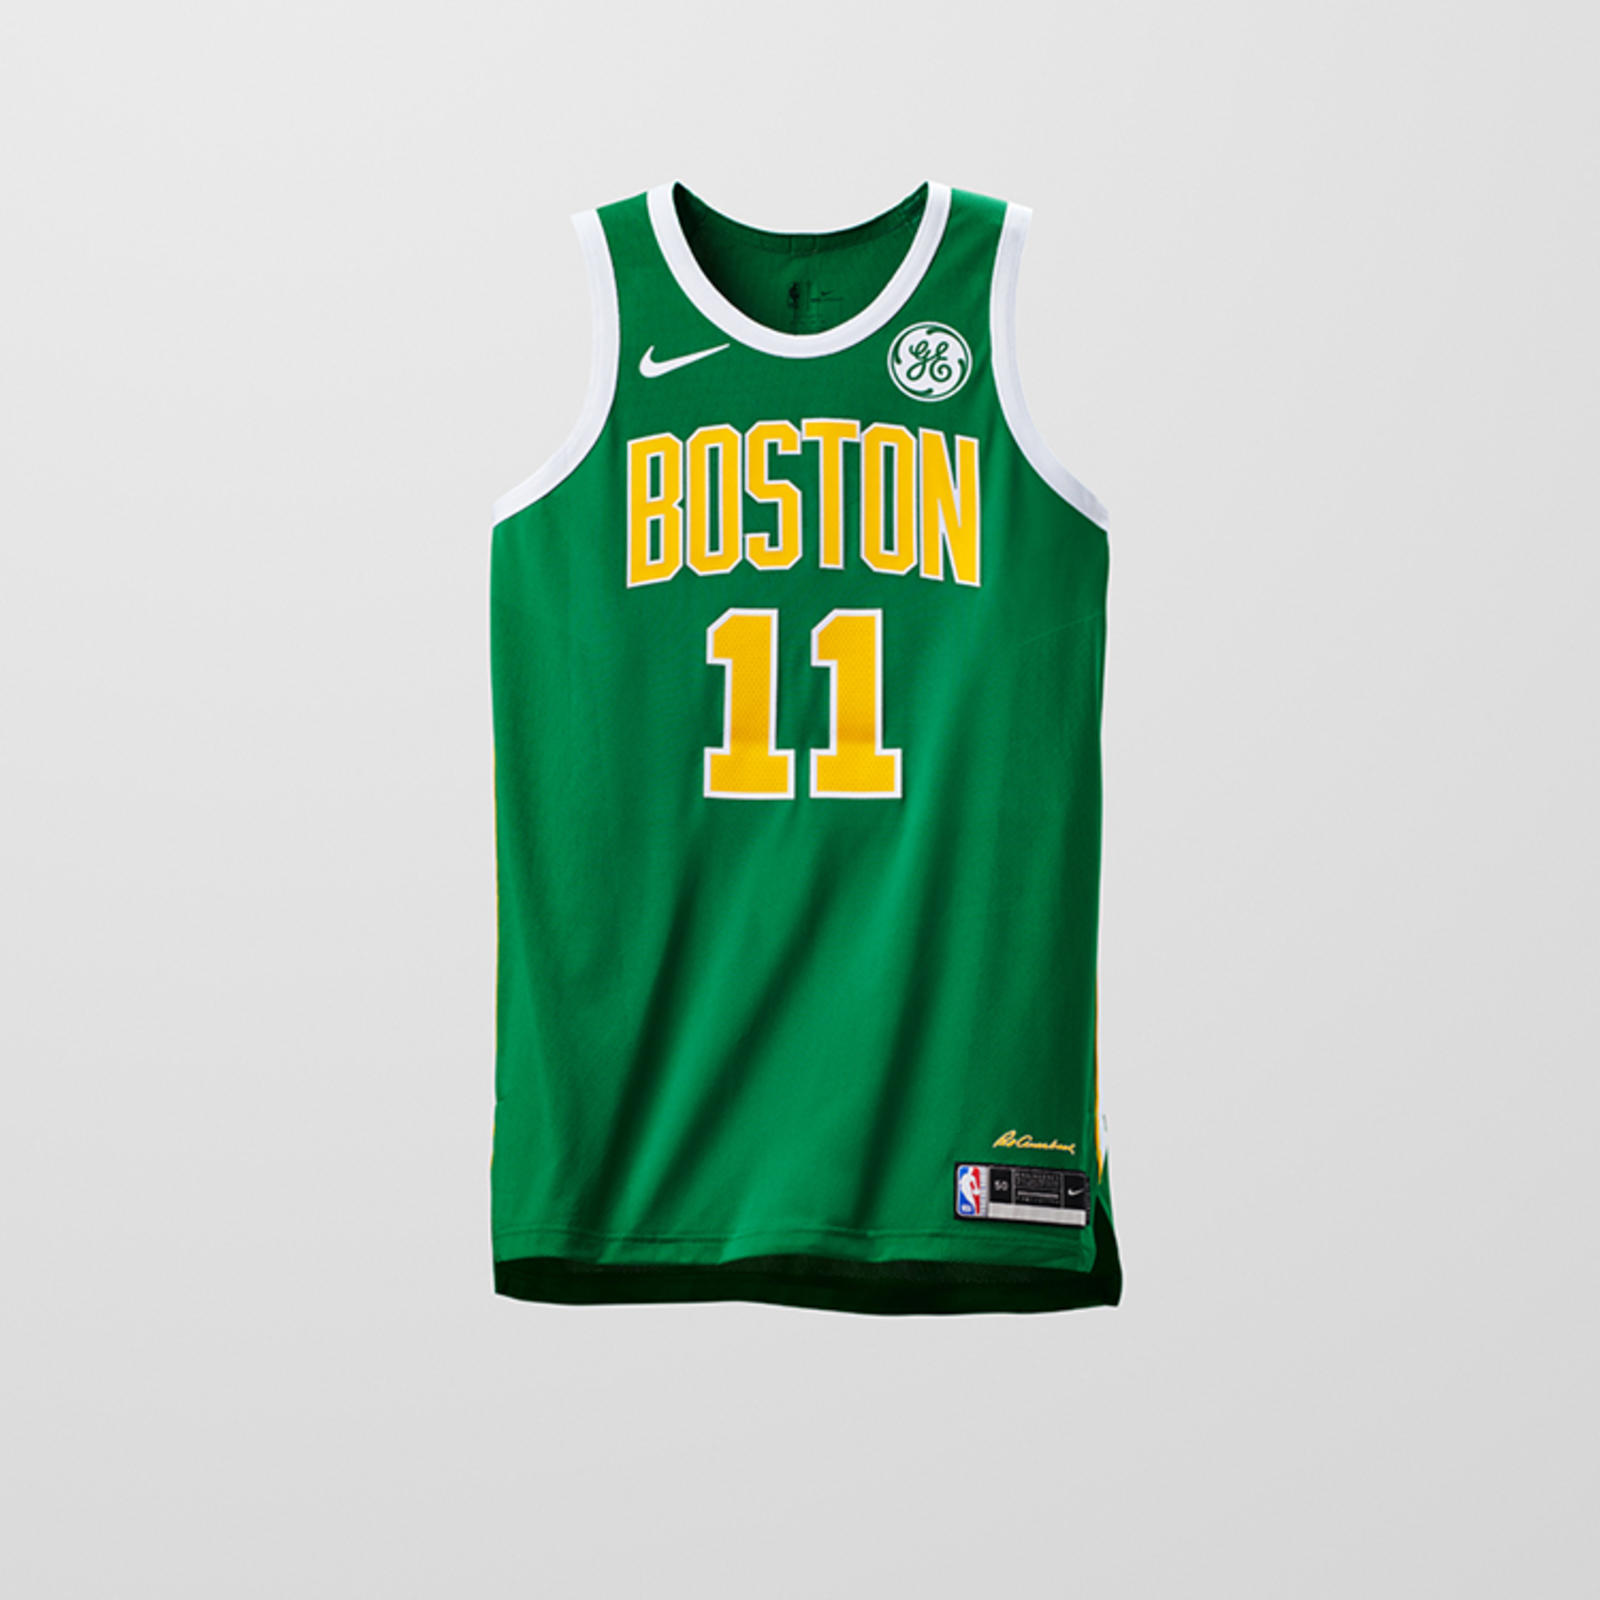 9fcf49848443 NBA Earned Edition Uniforms - Nike News